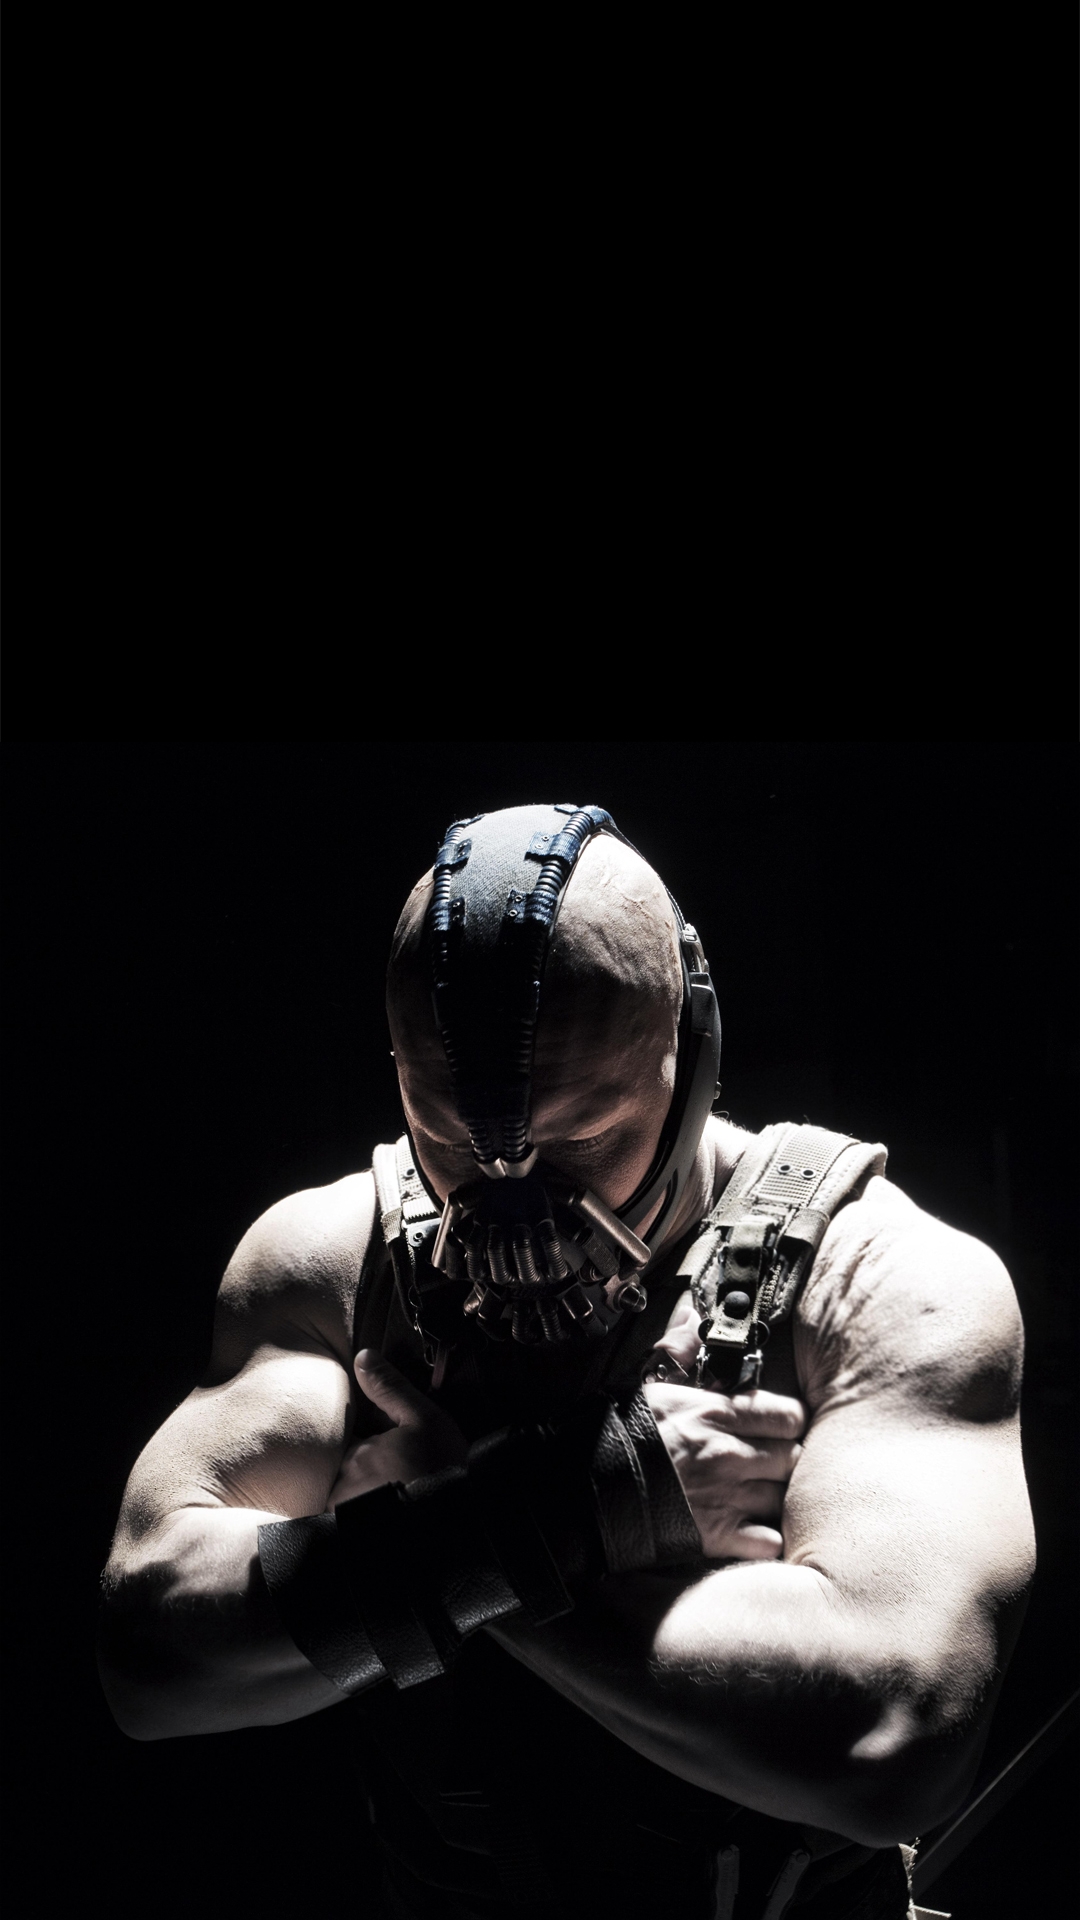 Bane the dark knight rises best htc one wallpapers free - Bane wallpaper ...